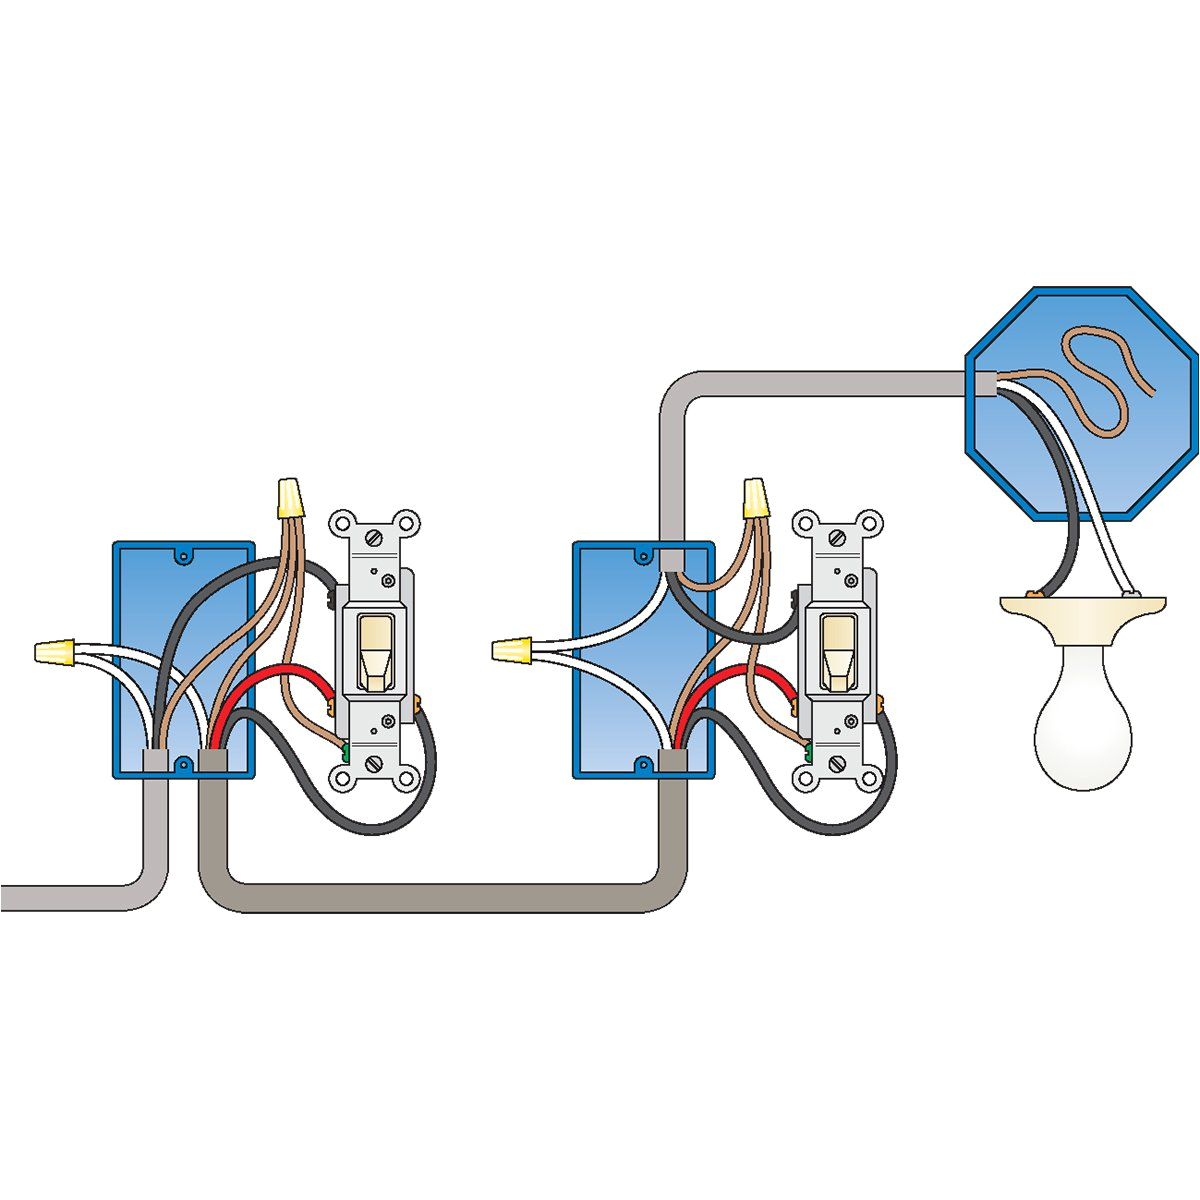 wiring diagram for lights does this look right second wiring wiring diagram for lights does this look right second